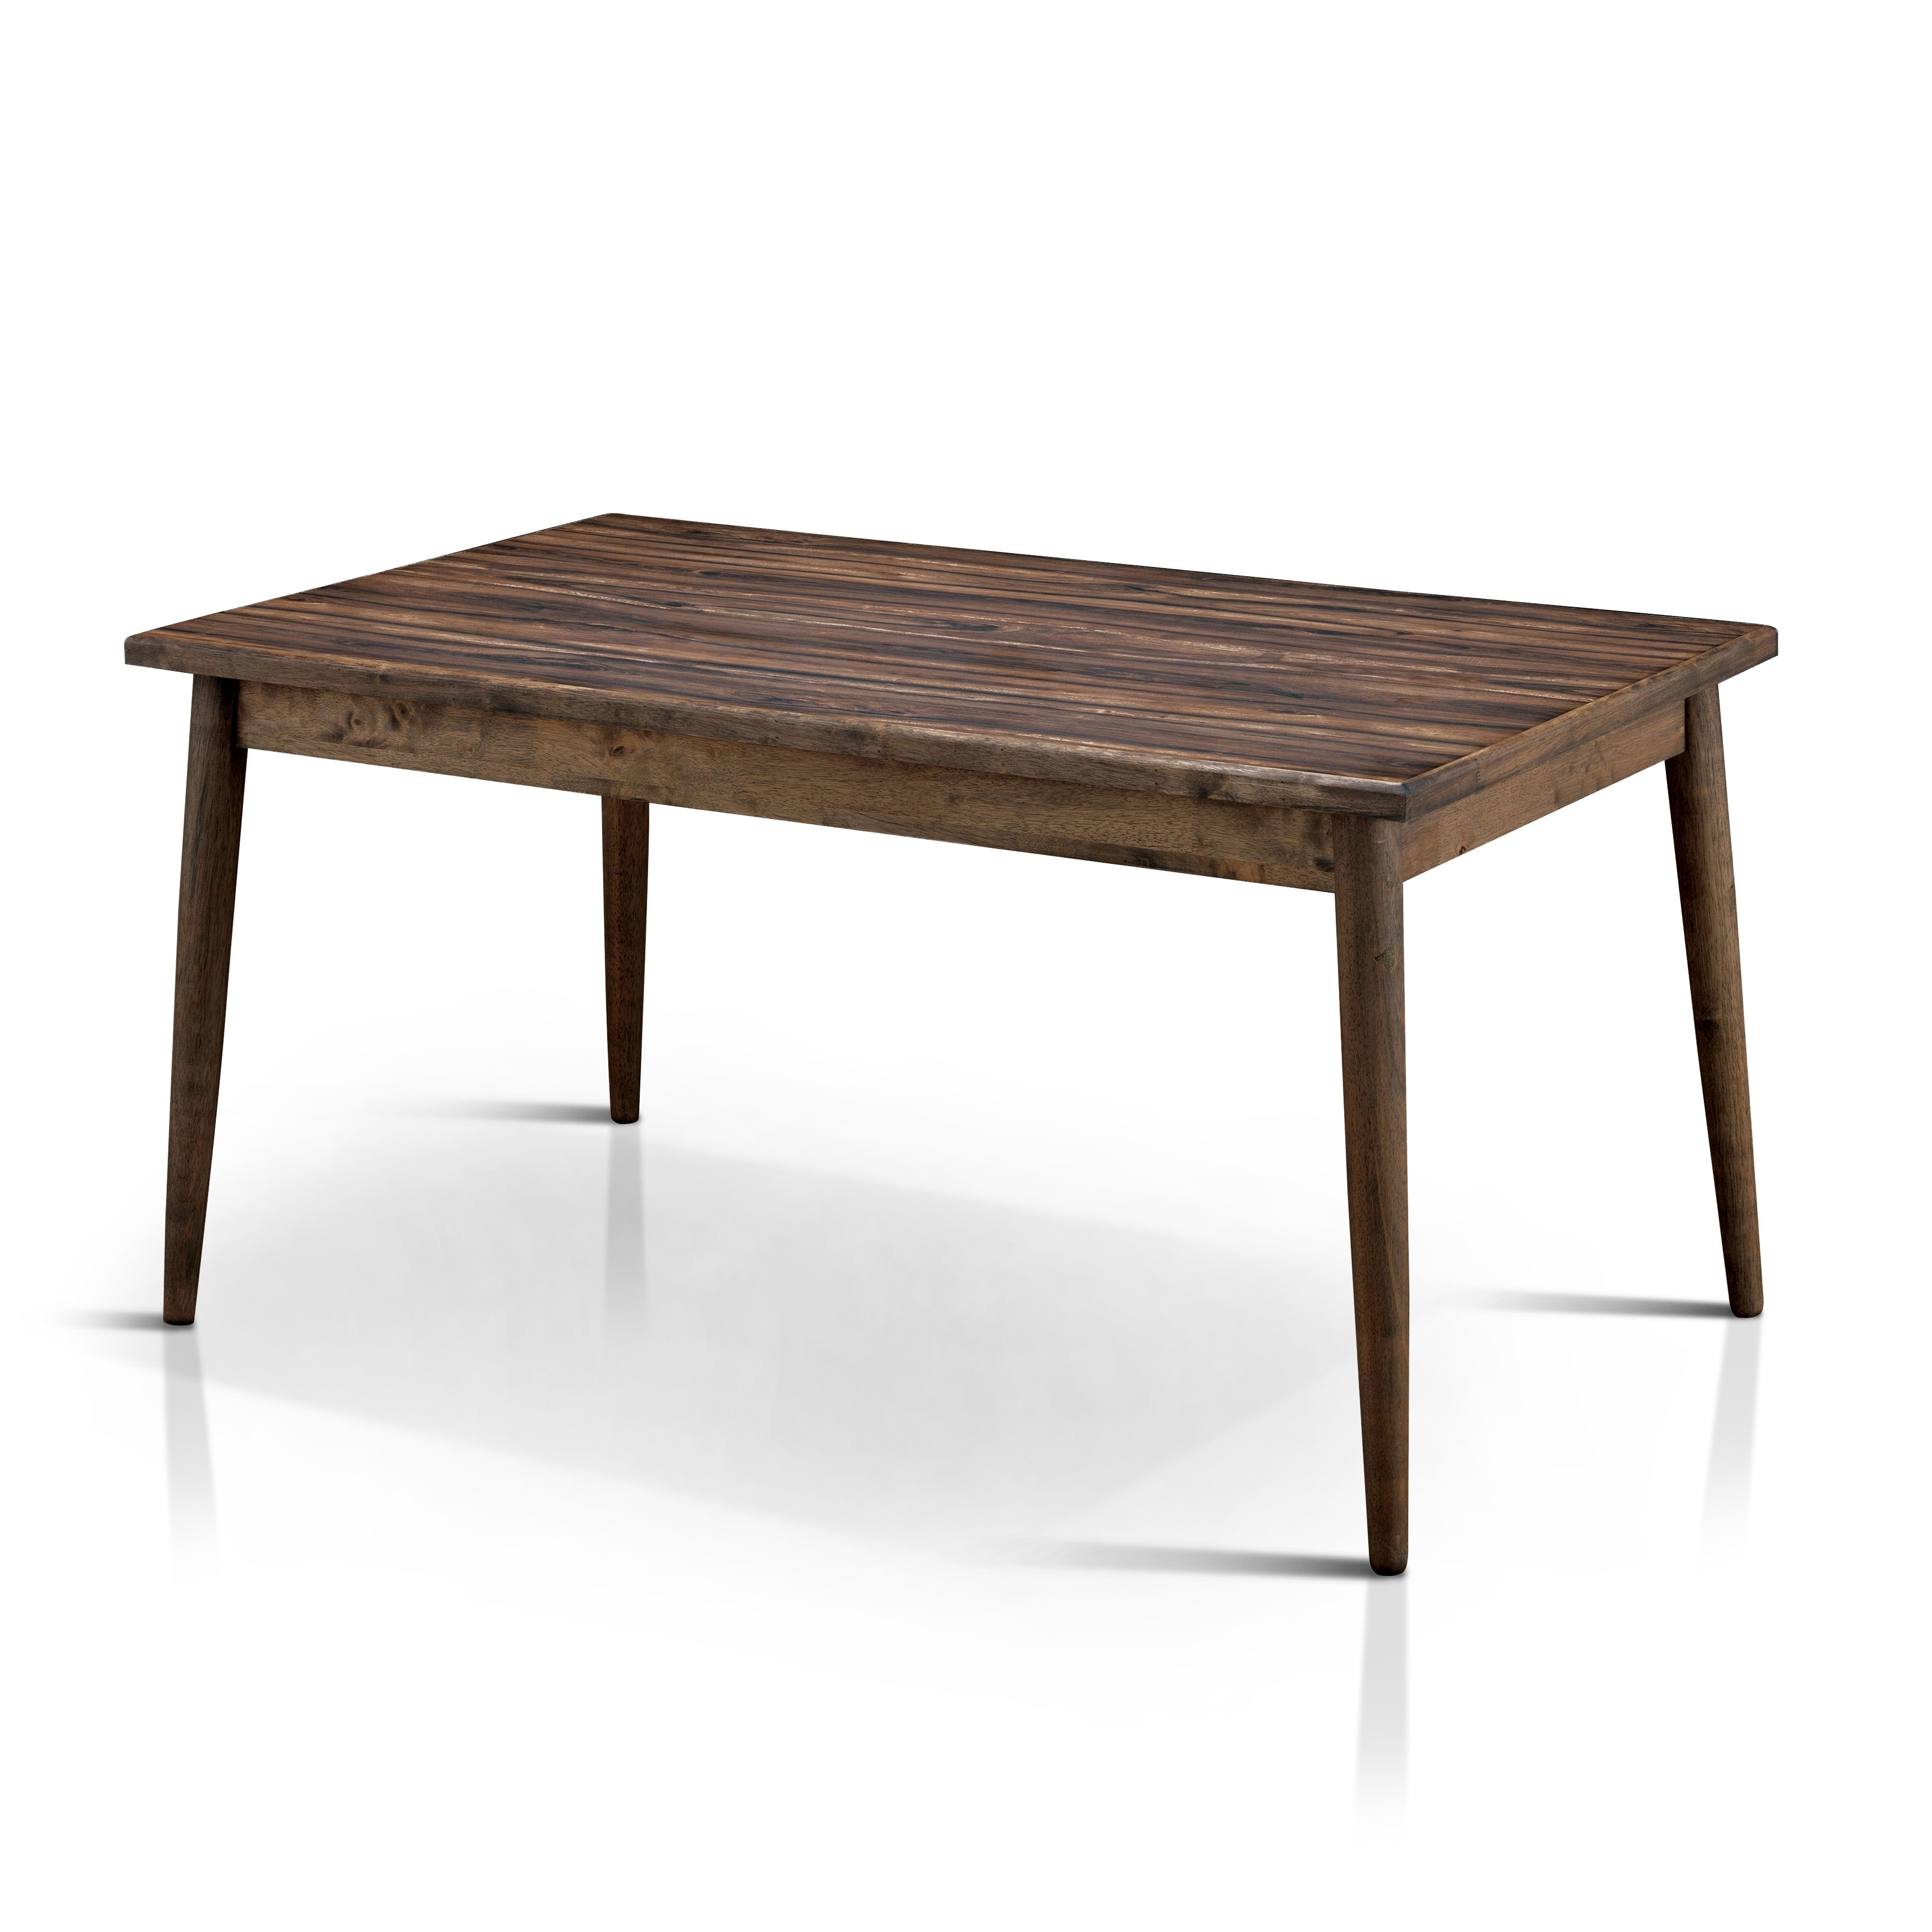 Furniture Of America Reynorth Mid Century Modern Dining Table Brown